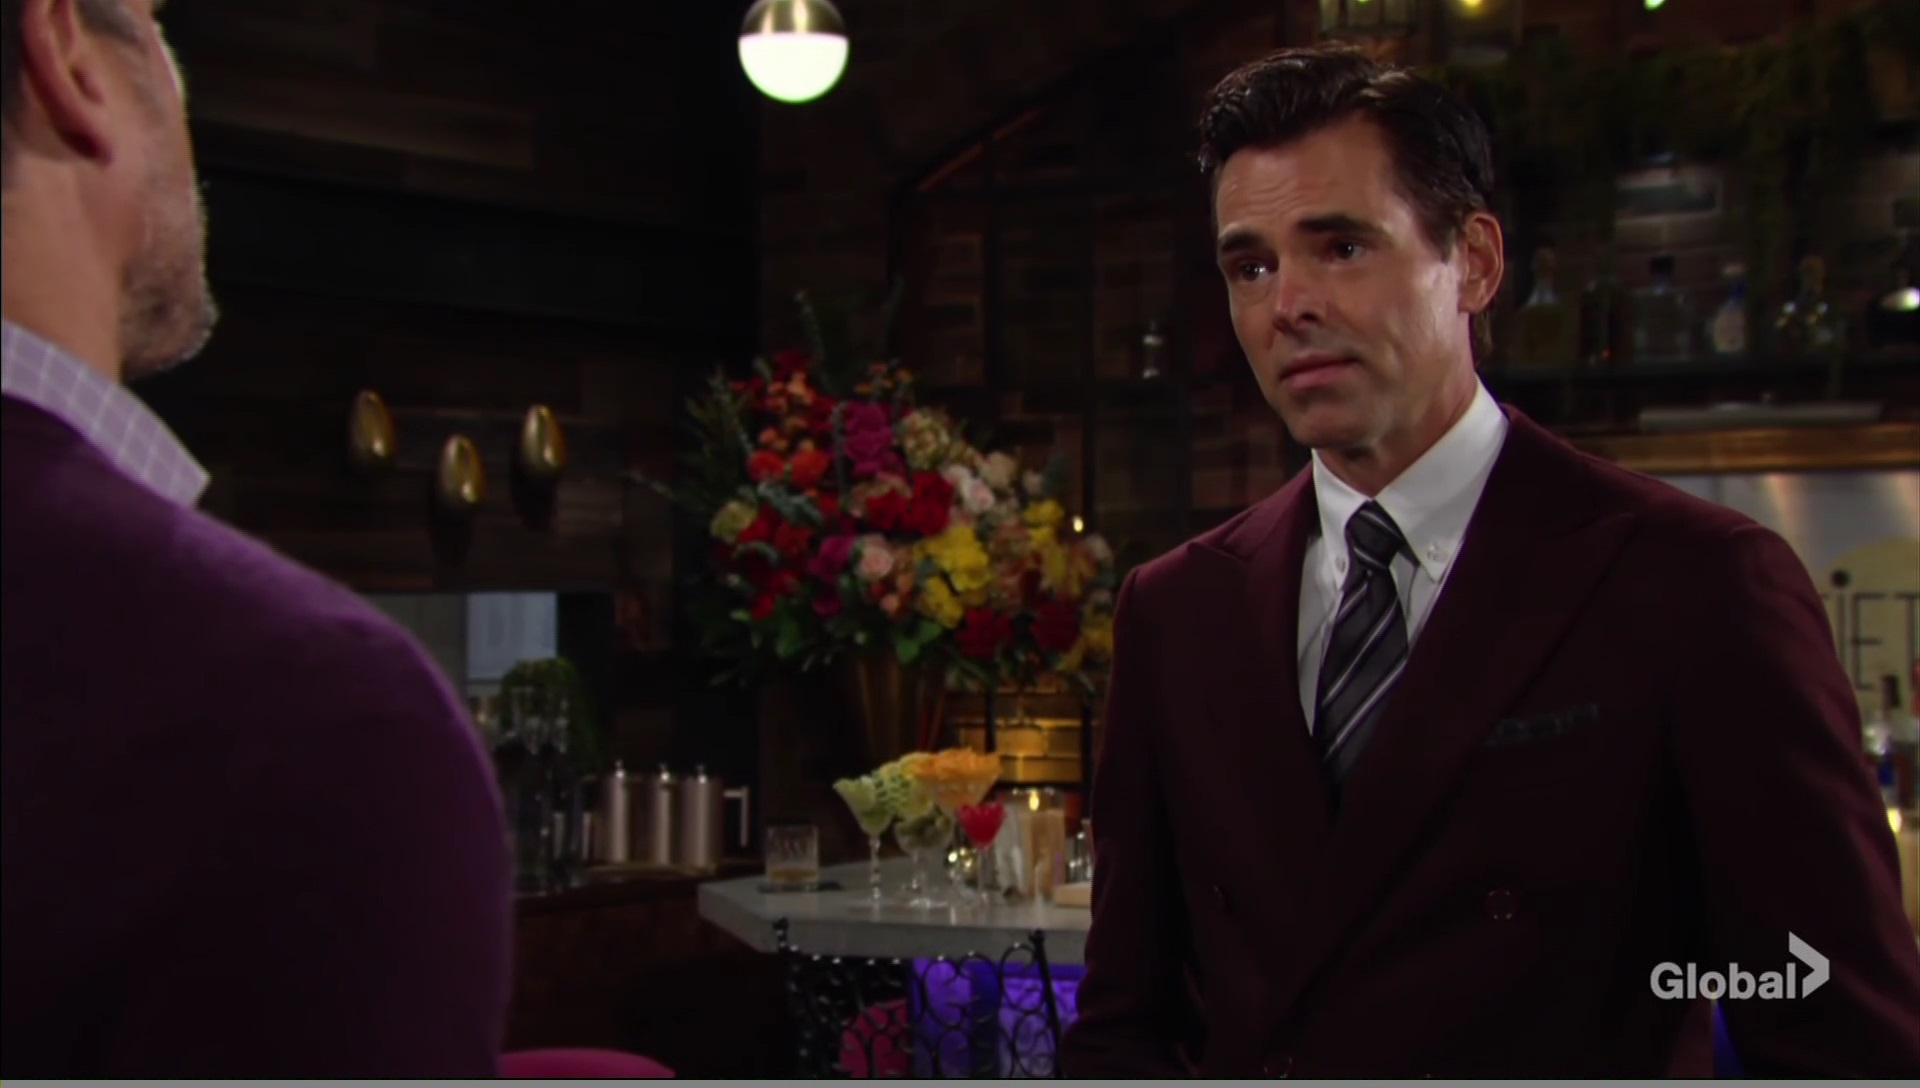 billy wants gossip young restless